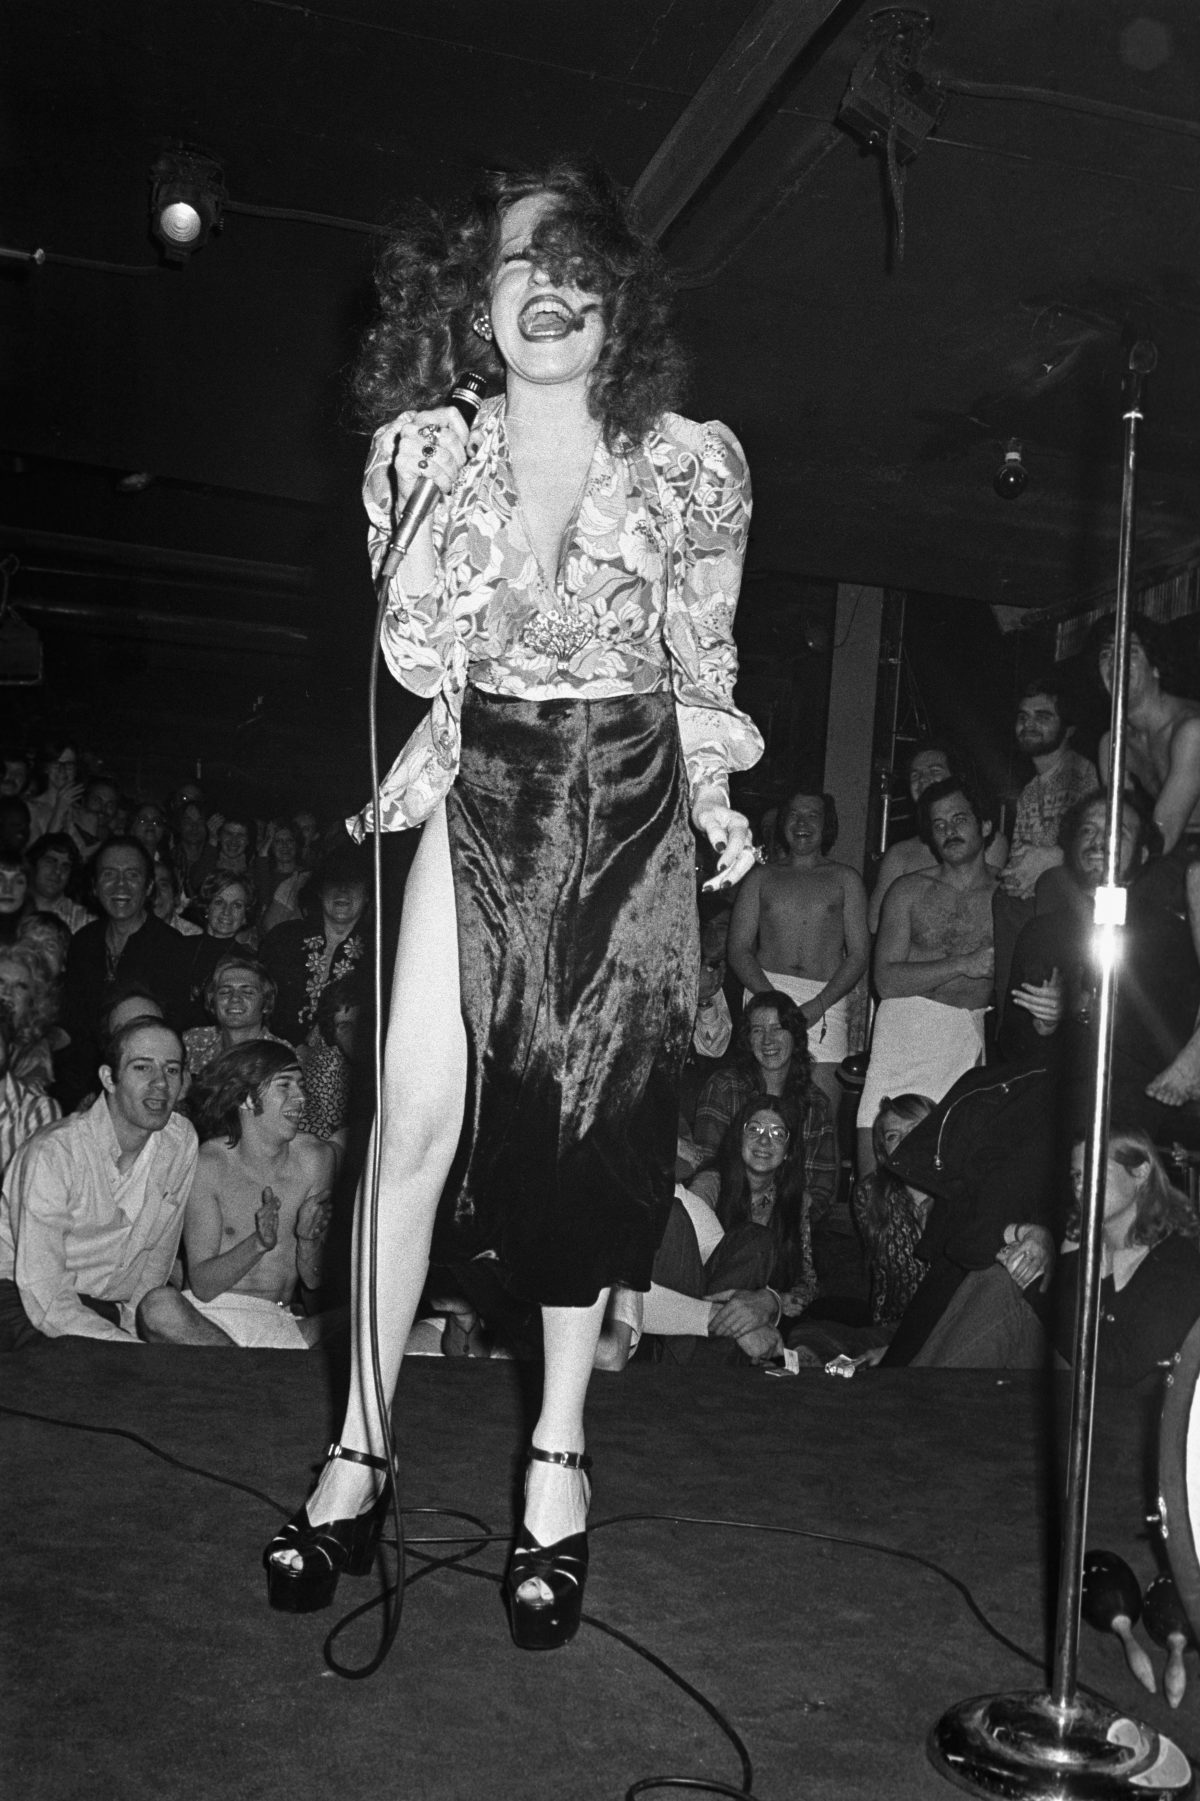 Bette Midler performing at the Continental - Feb 4 1972